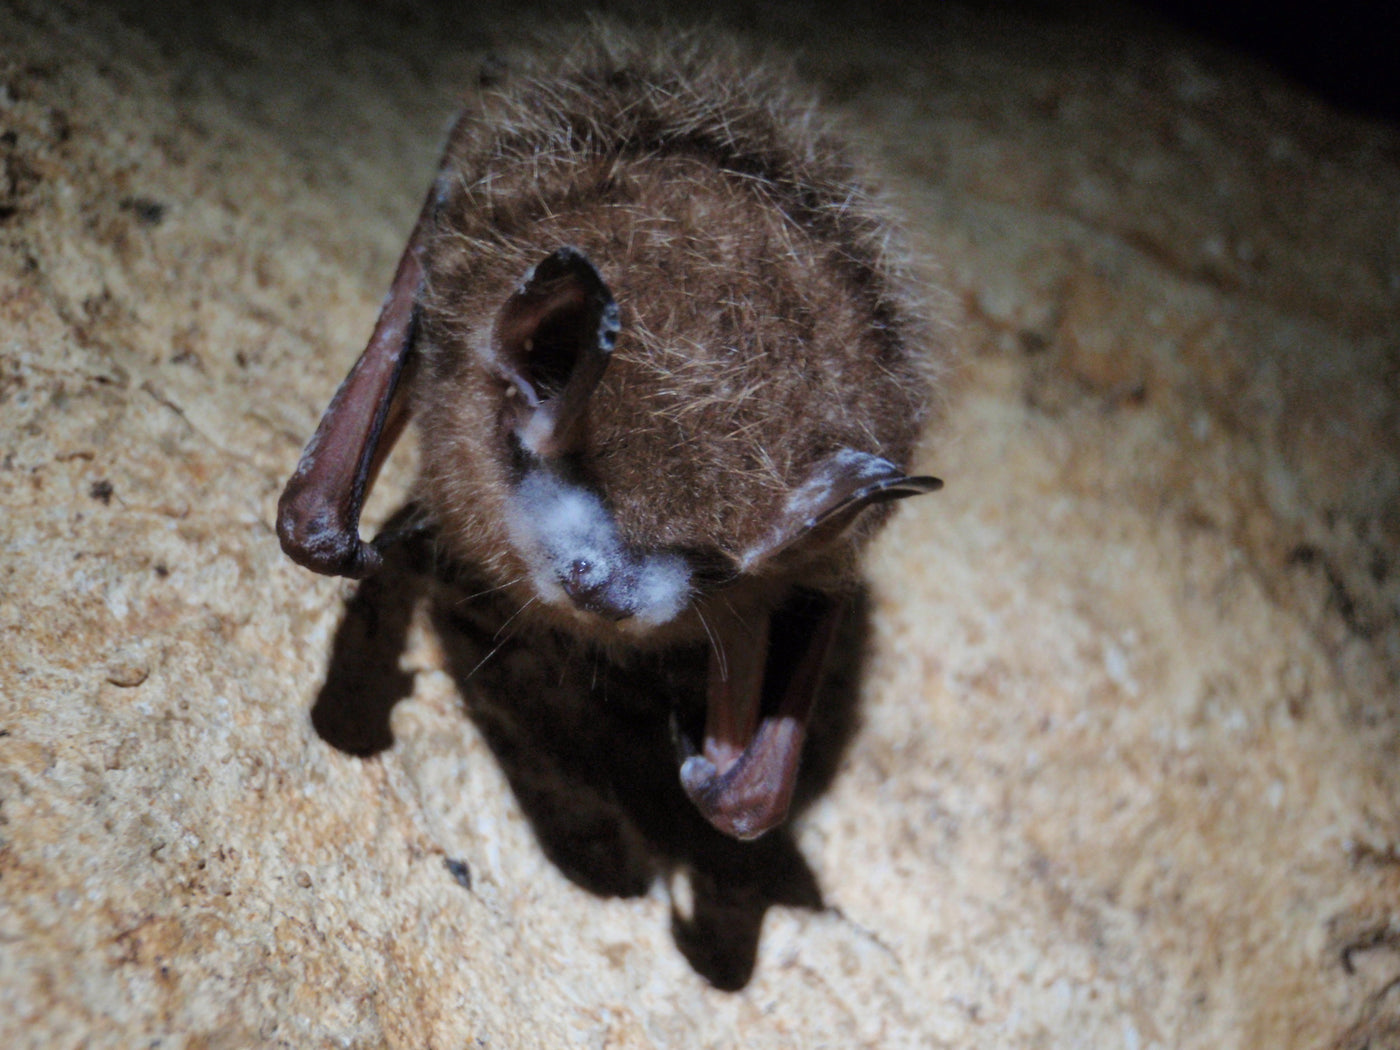 Bats are Dying from White Nose Syndrome